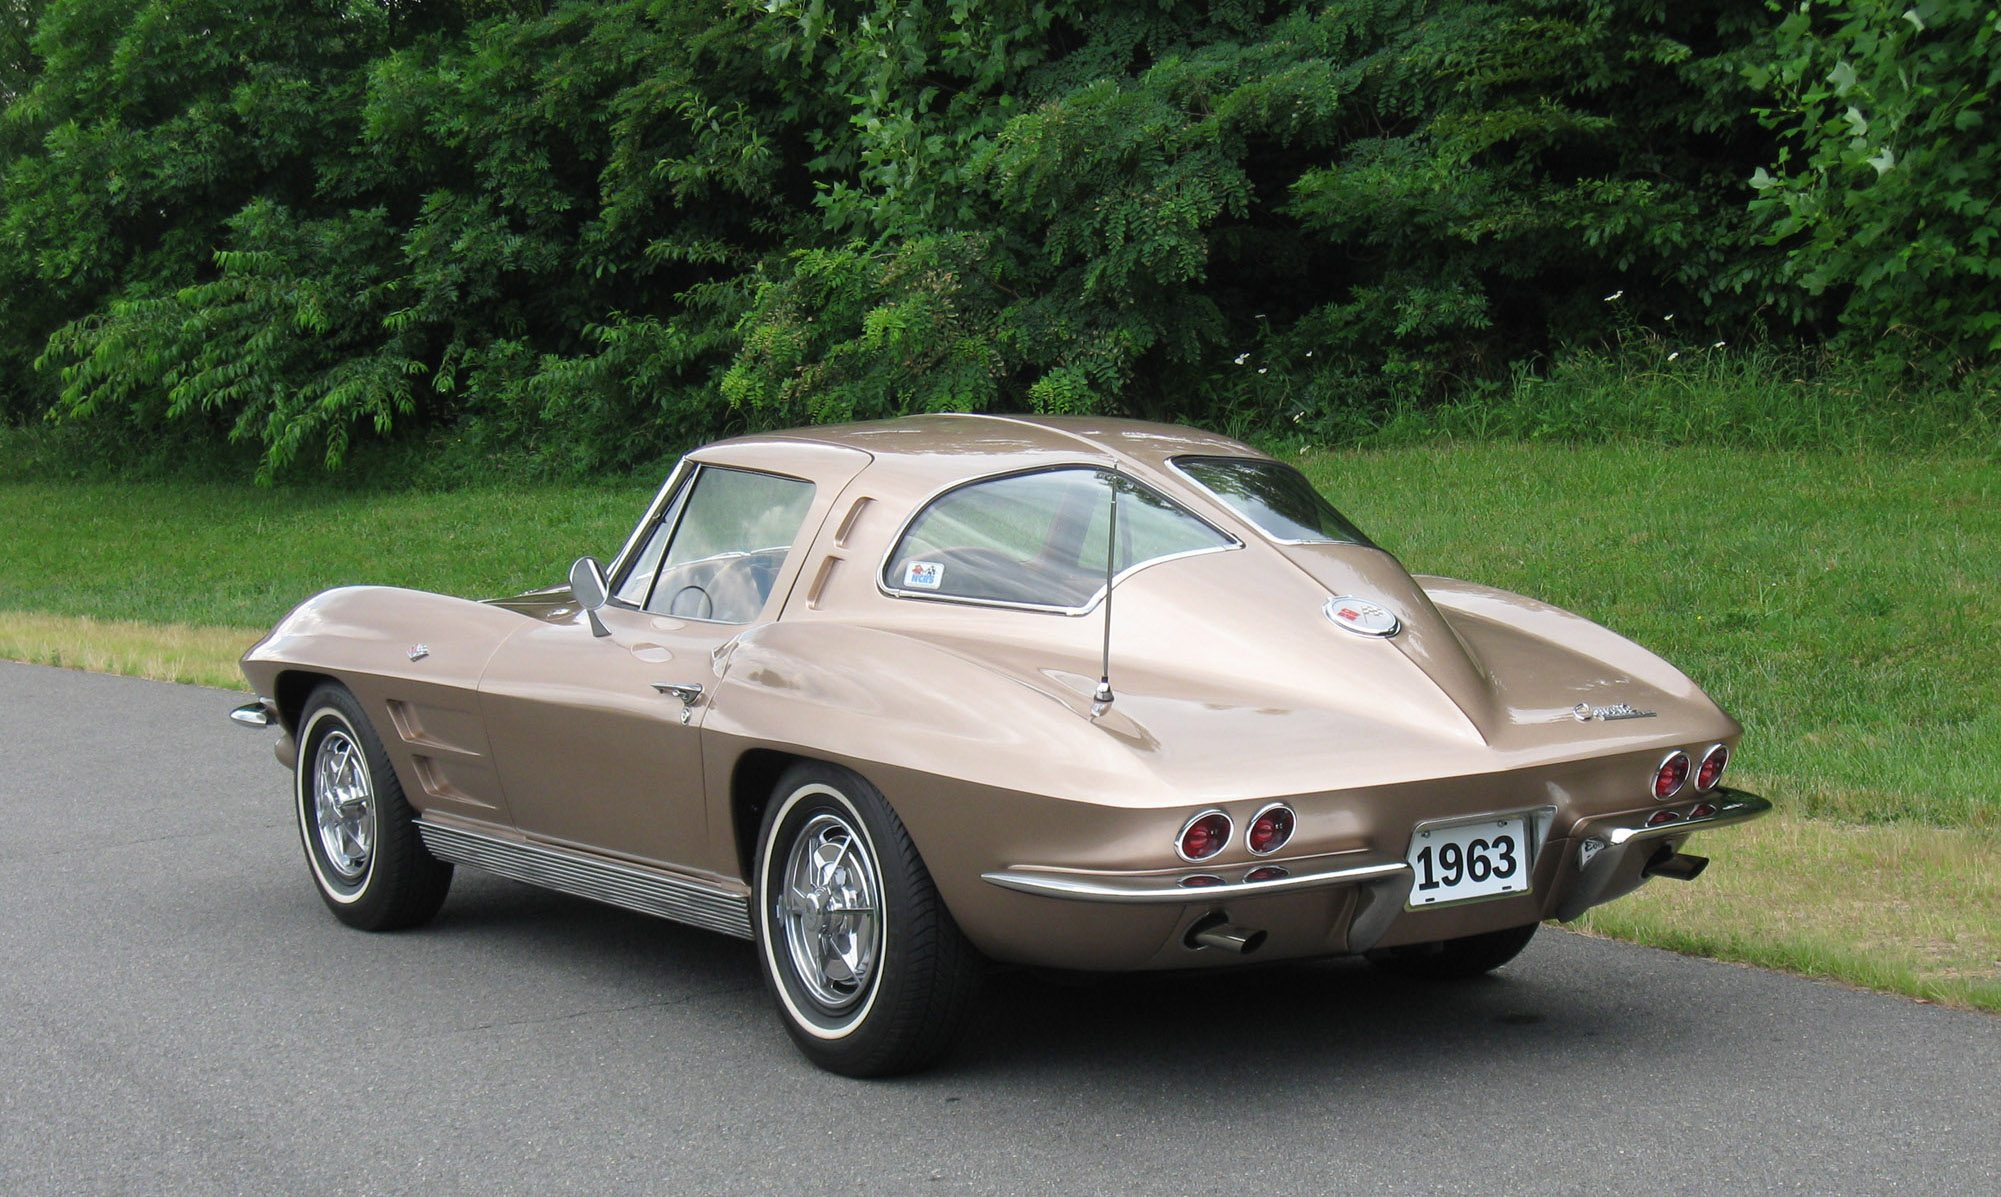 Split Window Corvette >> 1963 C2 Corvette | Ultimate Guide (Overview, Specs, VIN Info, Performance & More)